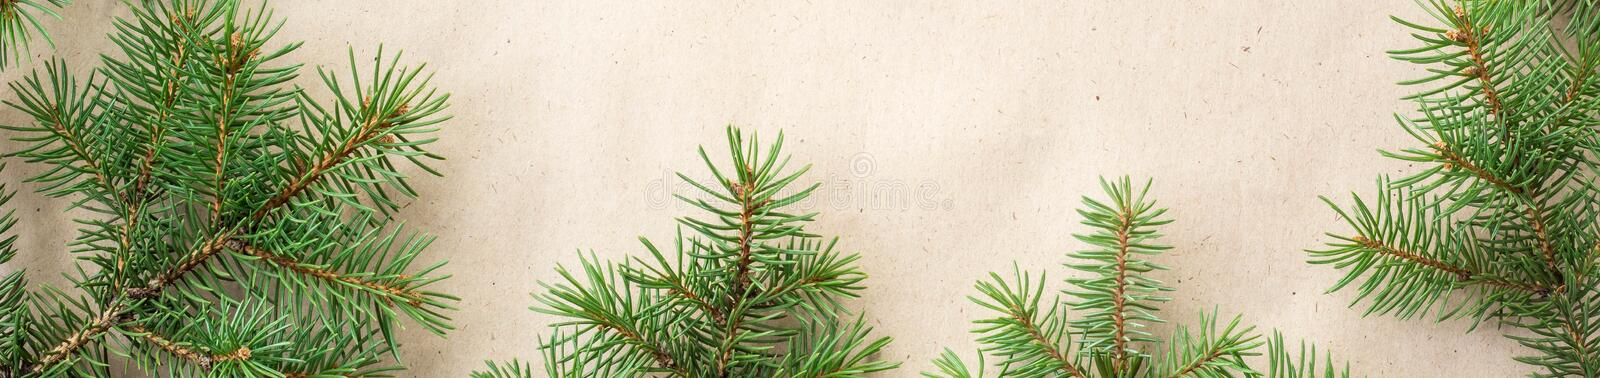 banner of fir branches border on light rustic background, good for christmas backdrop royalty free stock image